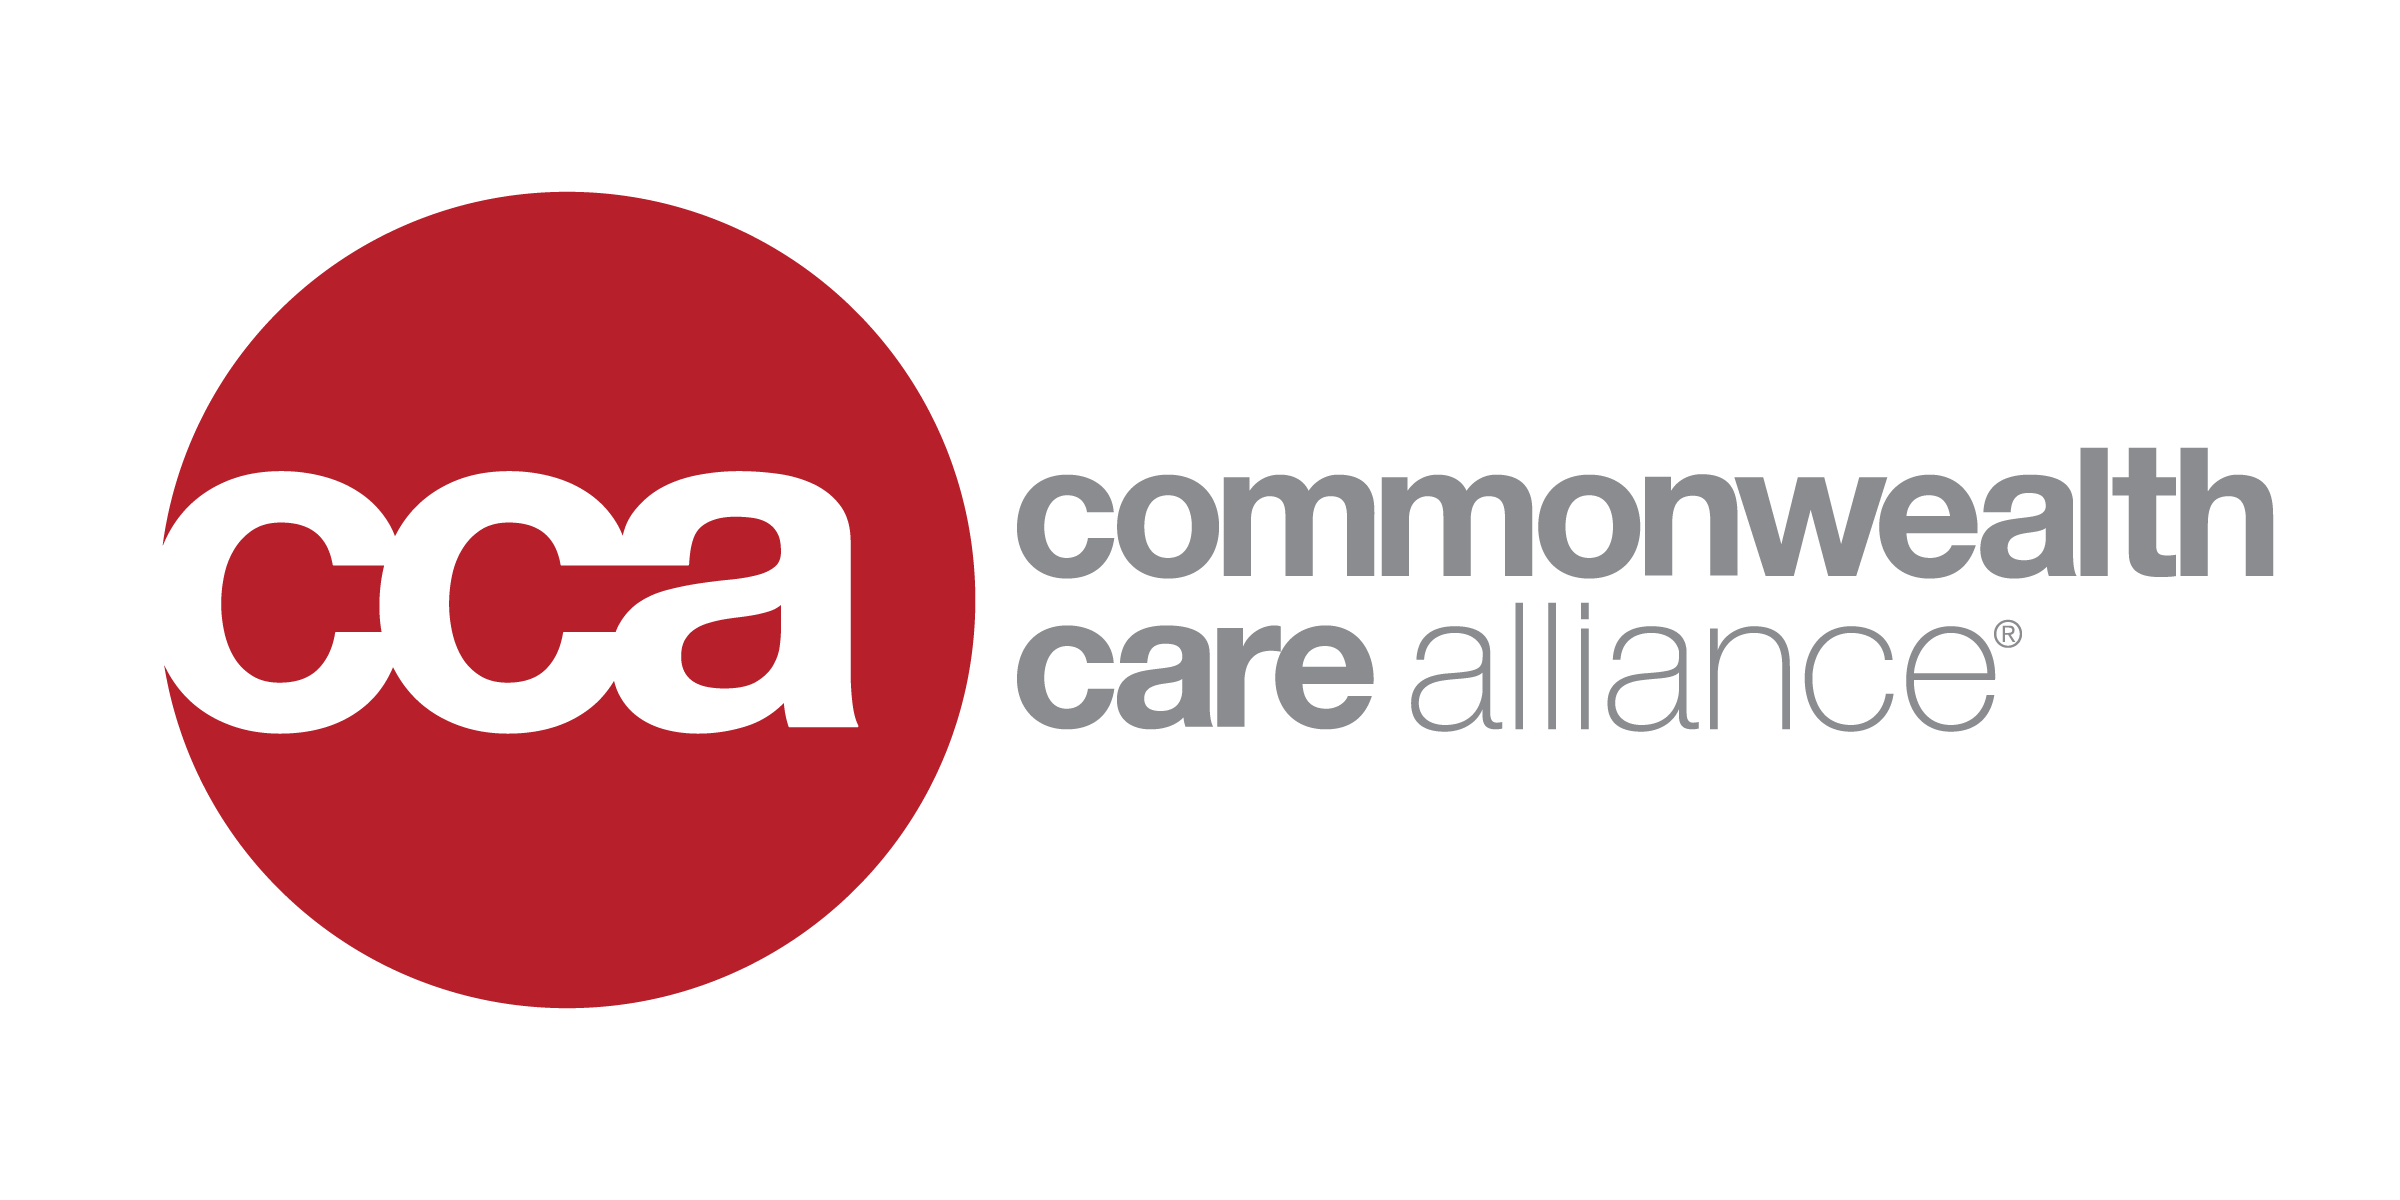 https://capeabilities.org/wp-content/uploads/2021/08/CCA_Logo_r_4C_Large-Use-01.png